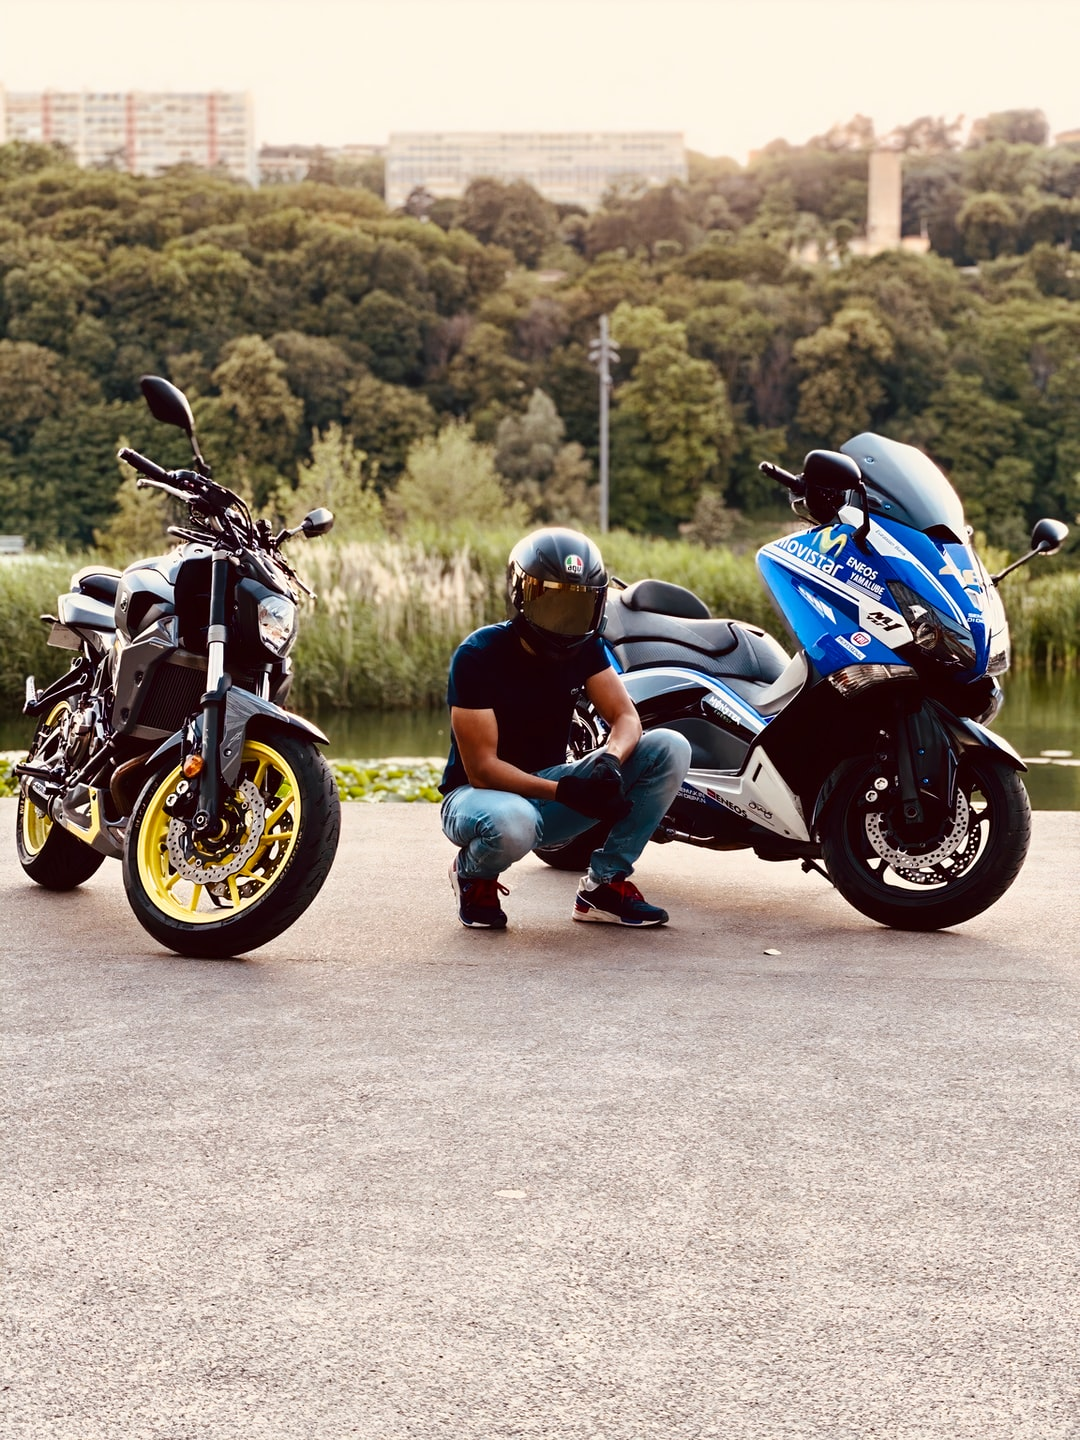 Yamaha, Mt007 and TMAX 530